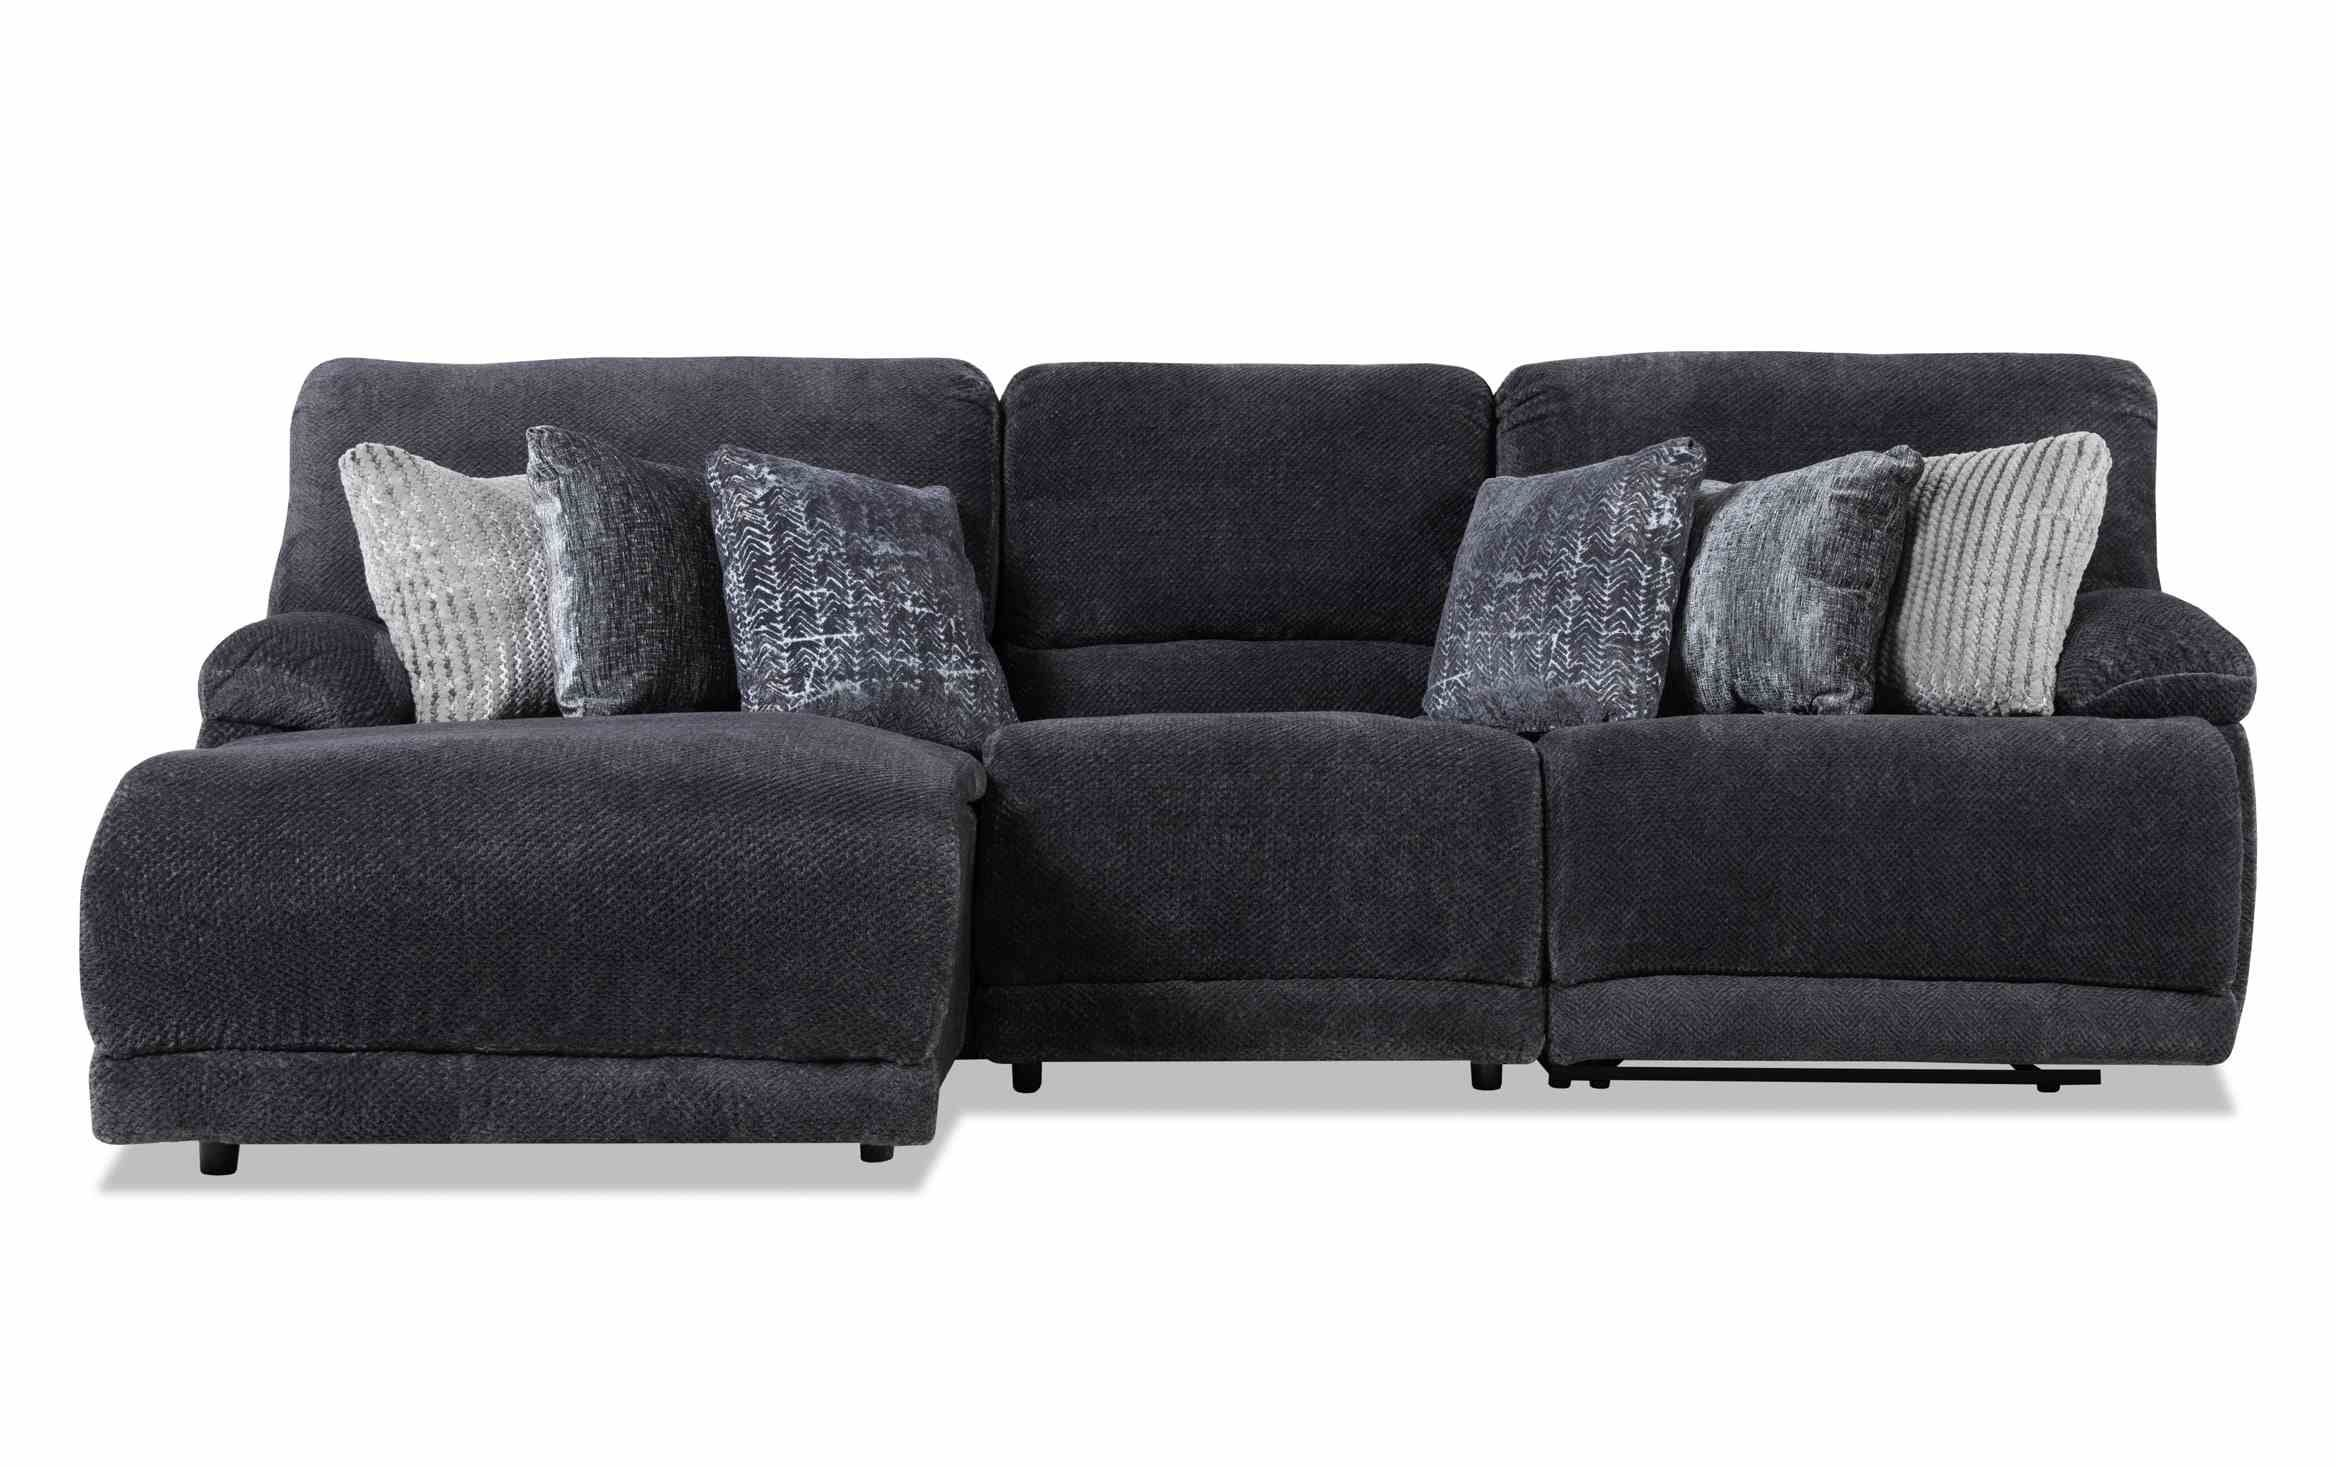 Alpine 3 Piece Right Arm Facing Power Reclining Sectional Pertaining To Contempo Power Reclining Sofas (View 6 of 15)